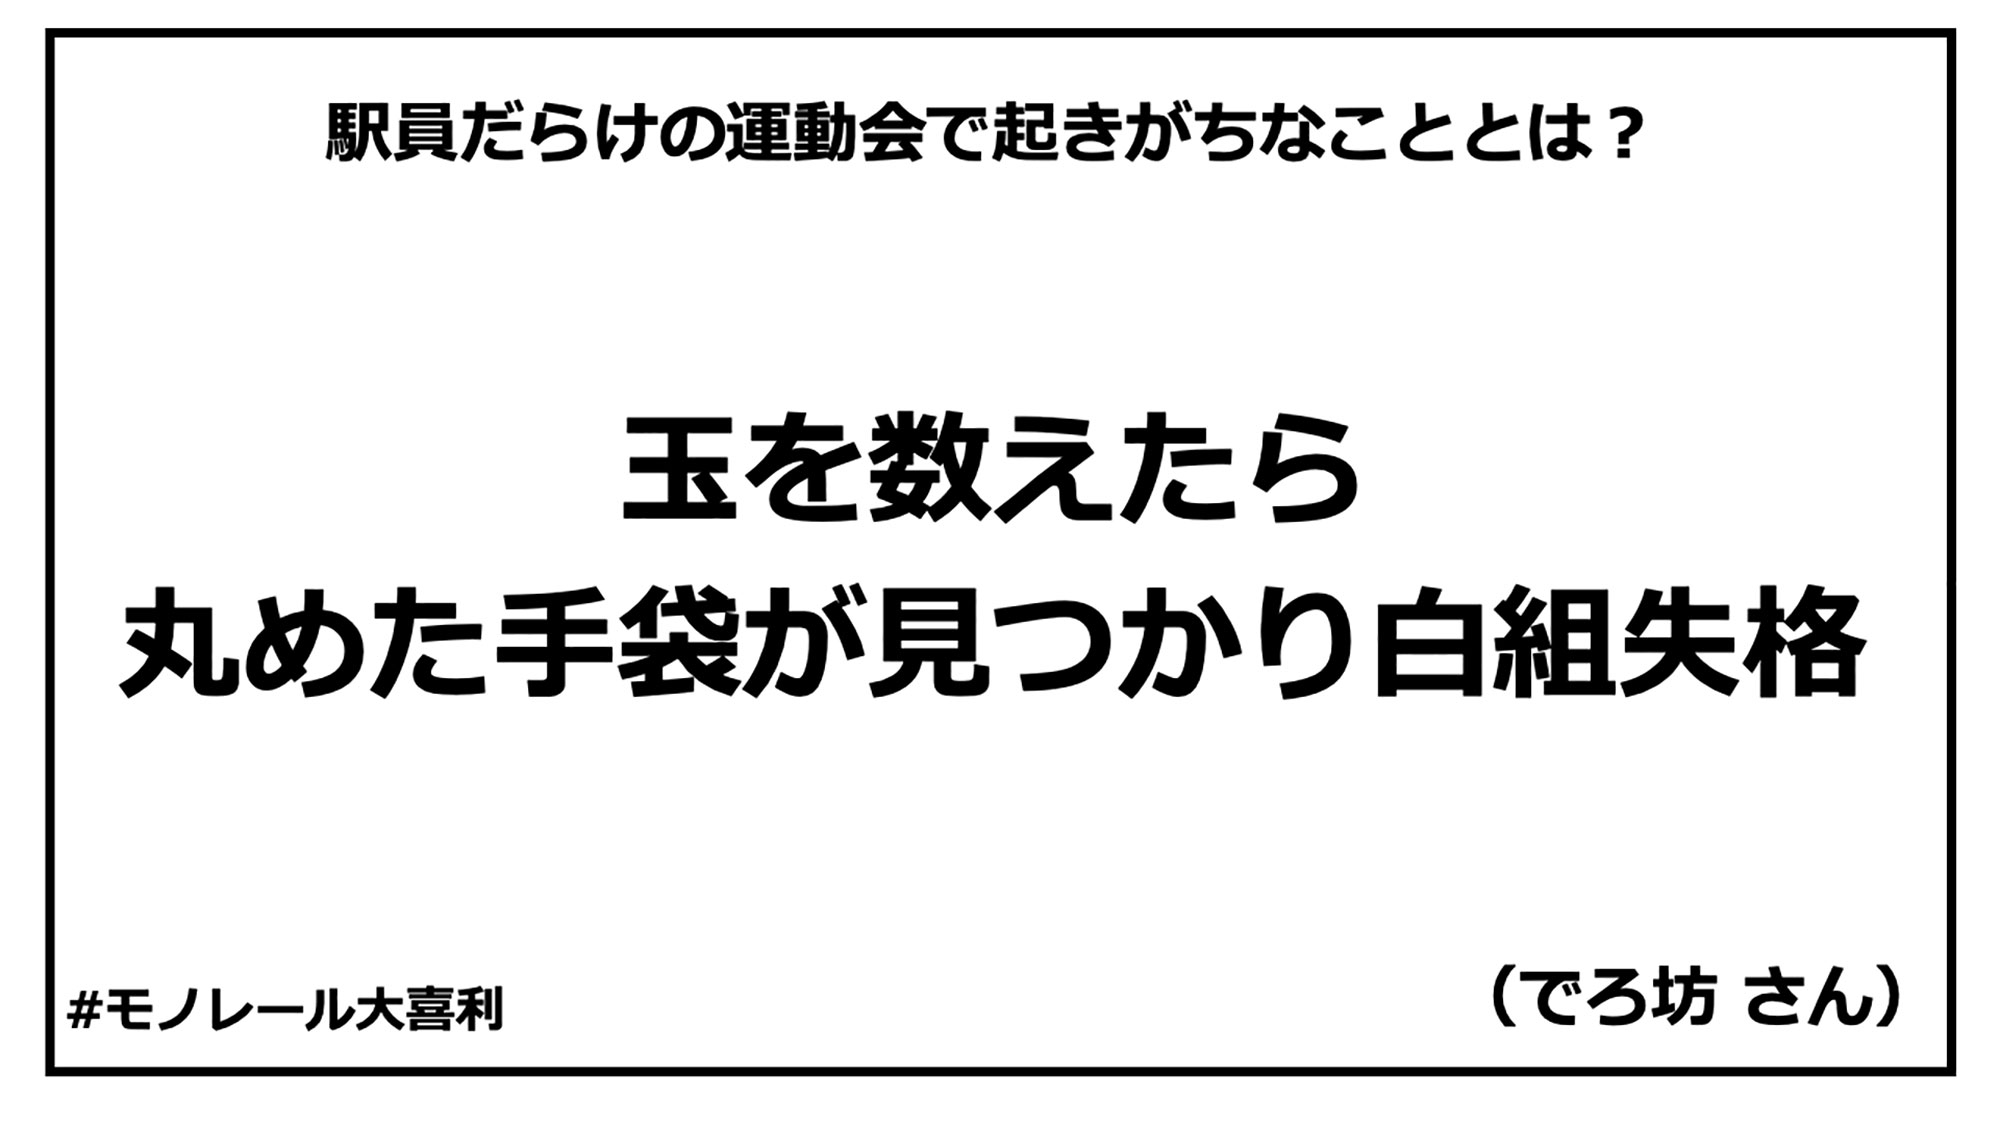 ogiri_answer_30_7.jpg